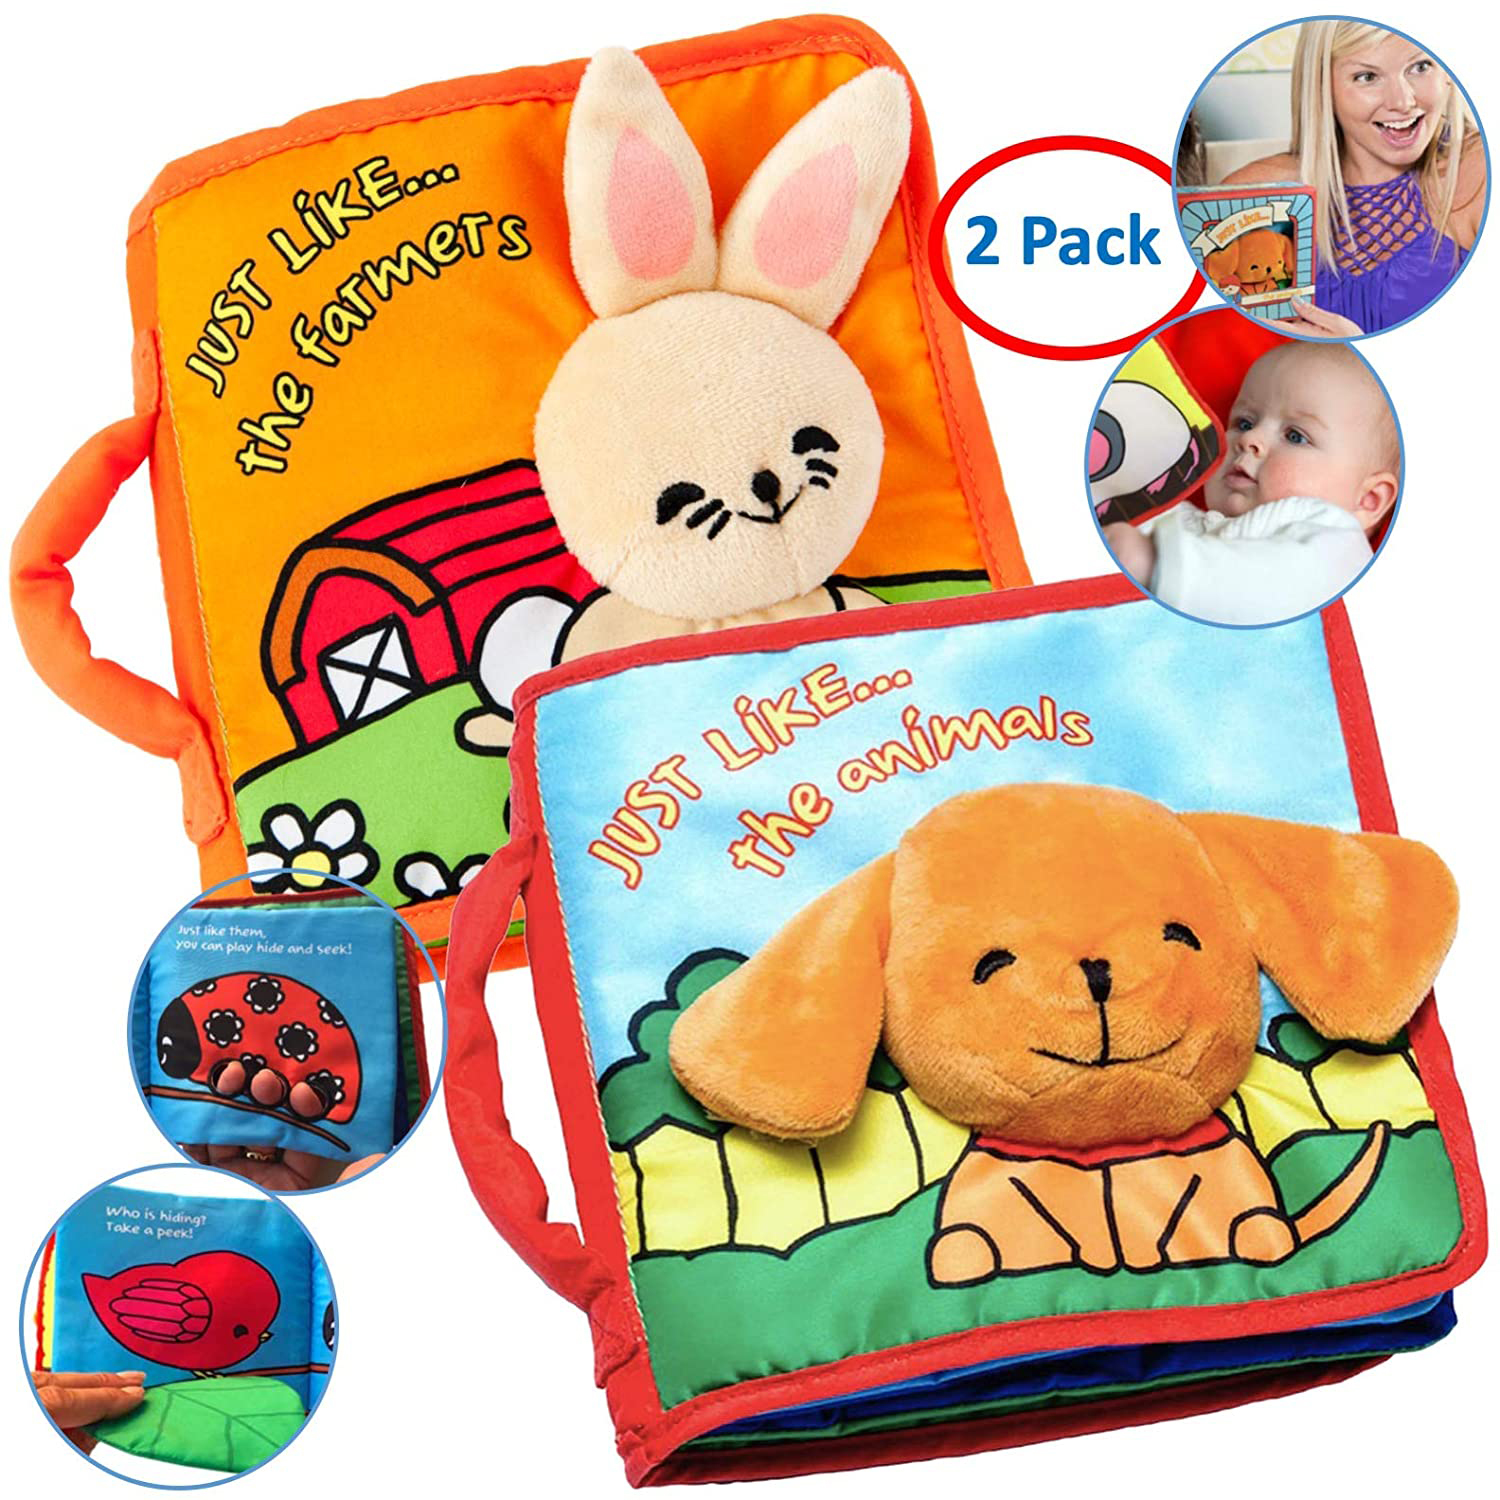 Best Baby Toy for Teething and Reading: ToBe ReadyForLife Crinkly Cloth Books (Set of 2)